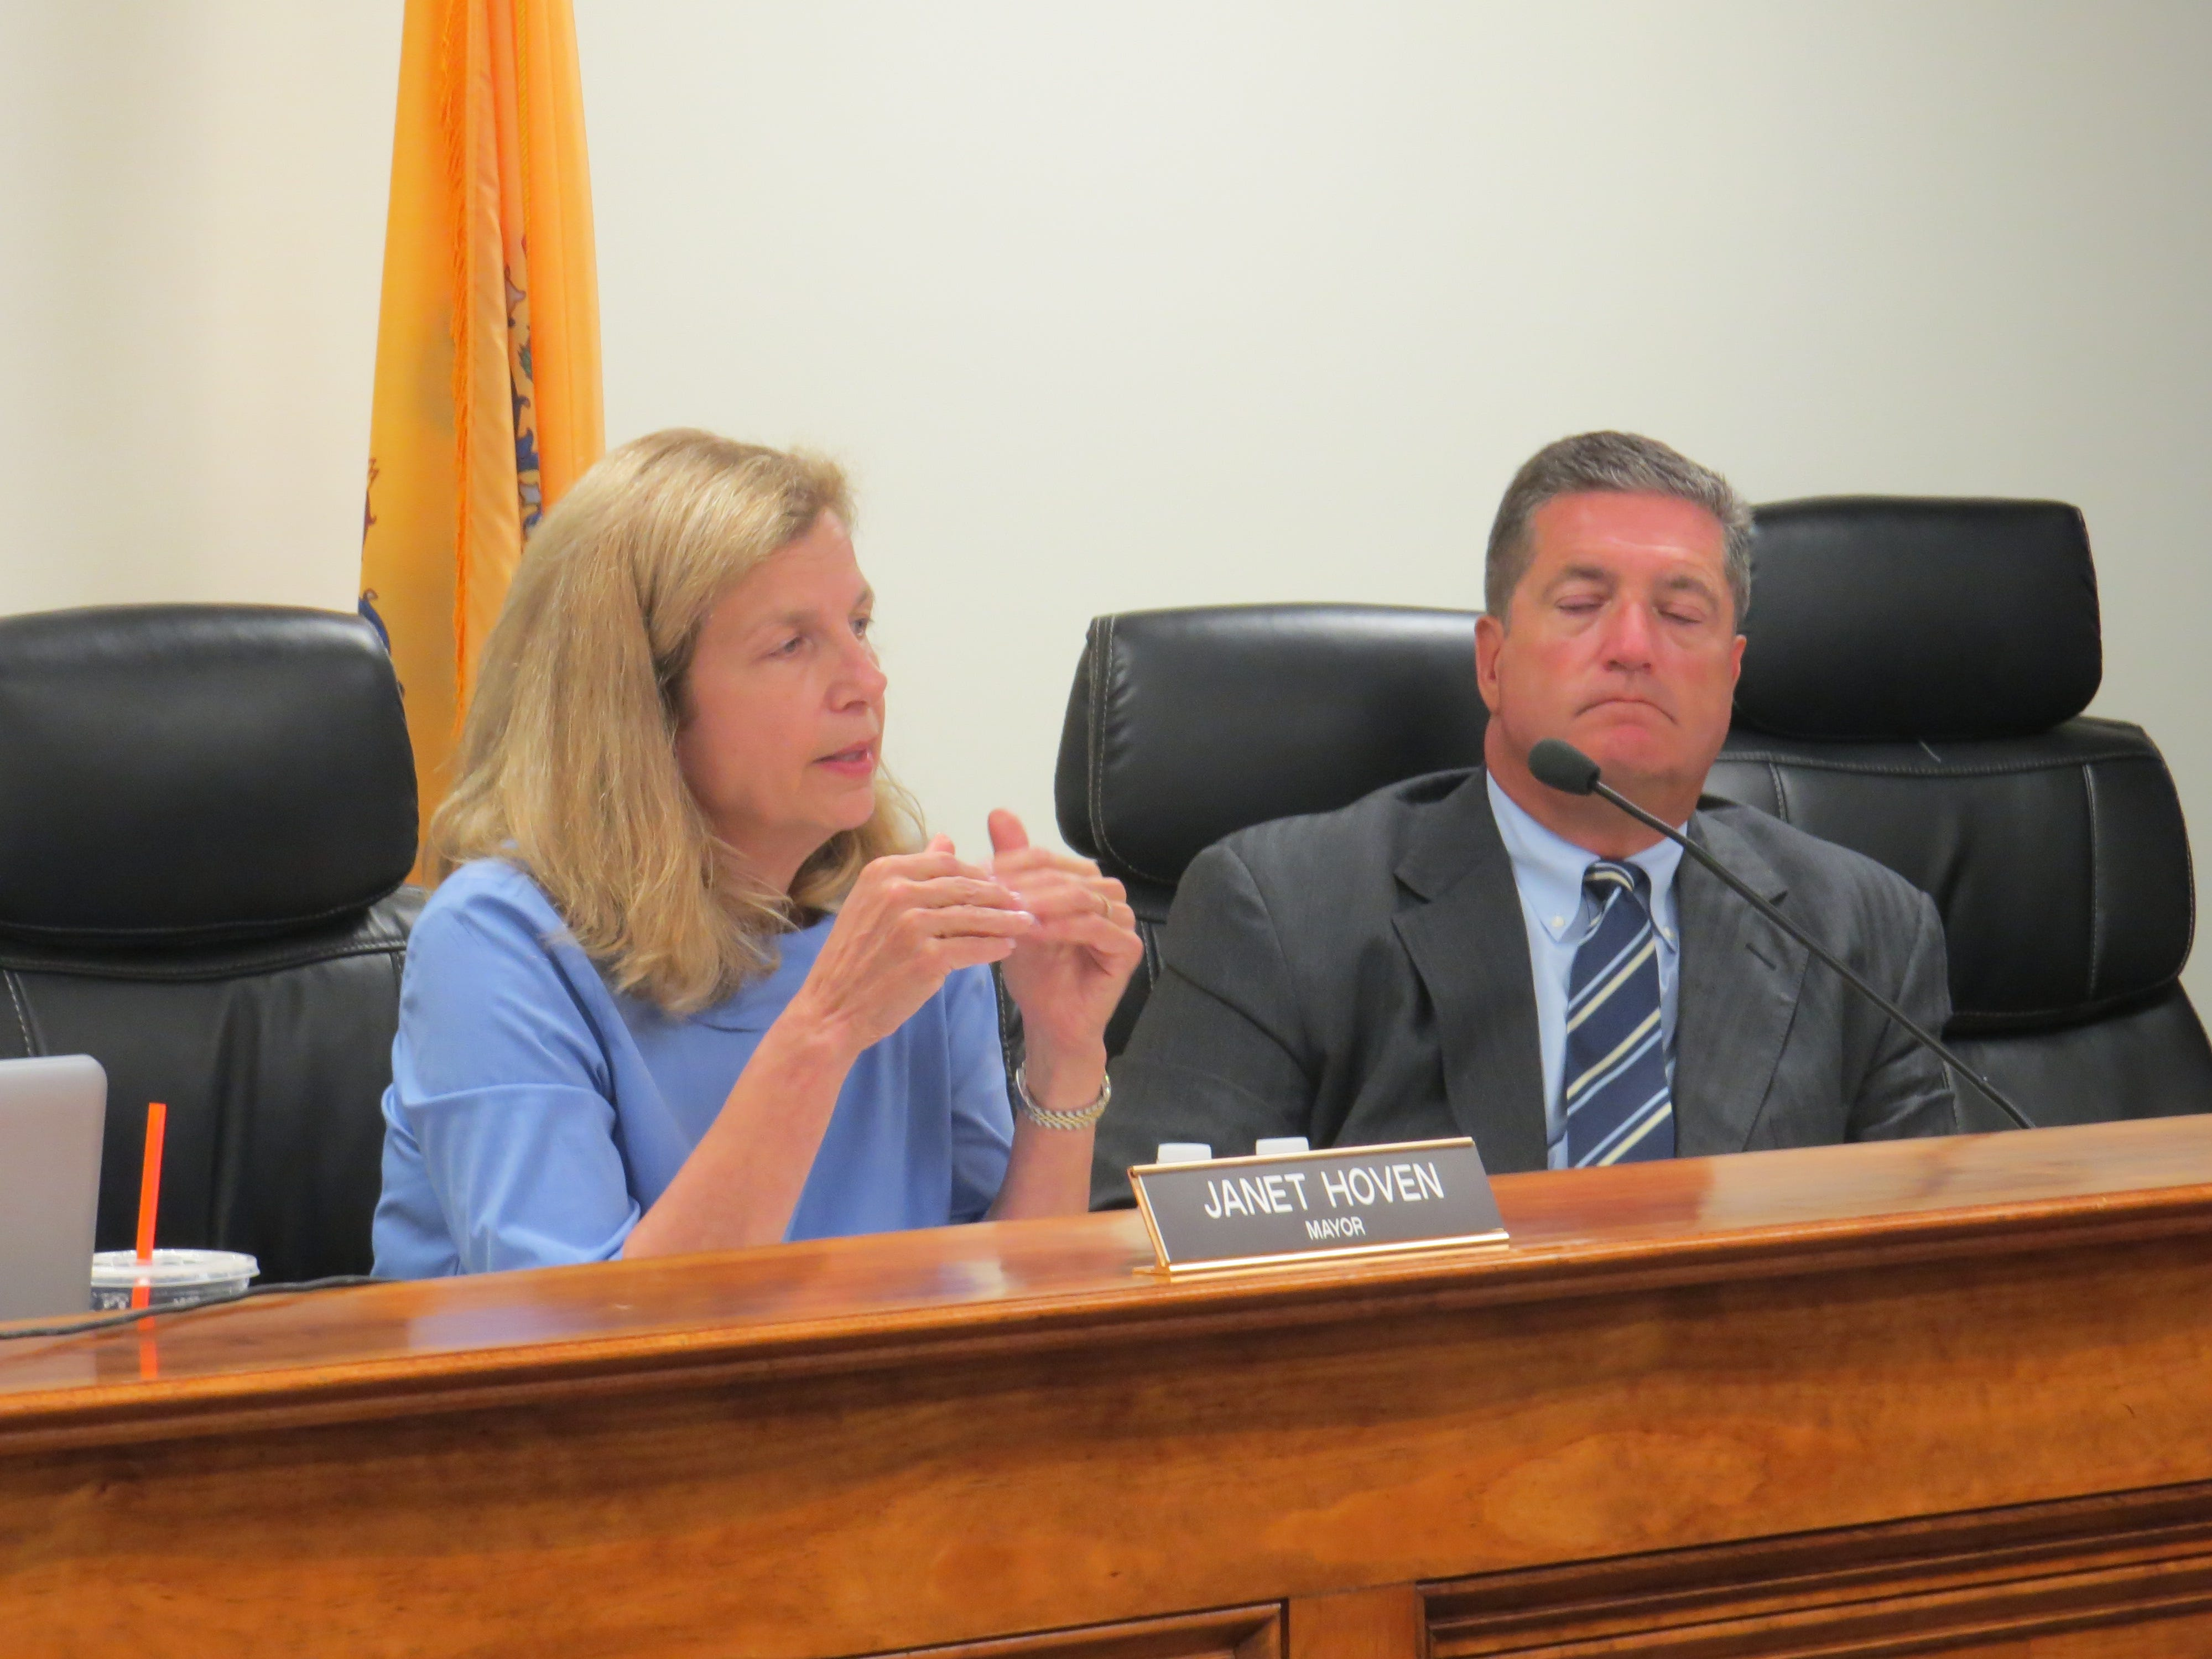 Mayor Janet Hoven and Borough Attorney Brian Mason at the Chester Council meeting Sept. 18, 2018.